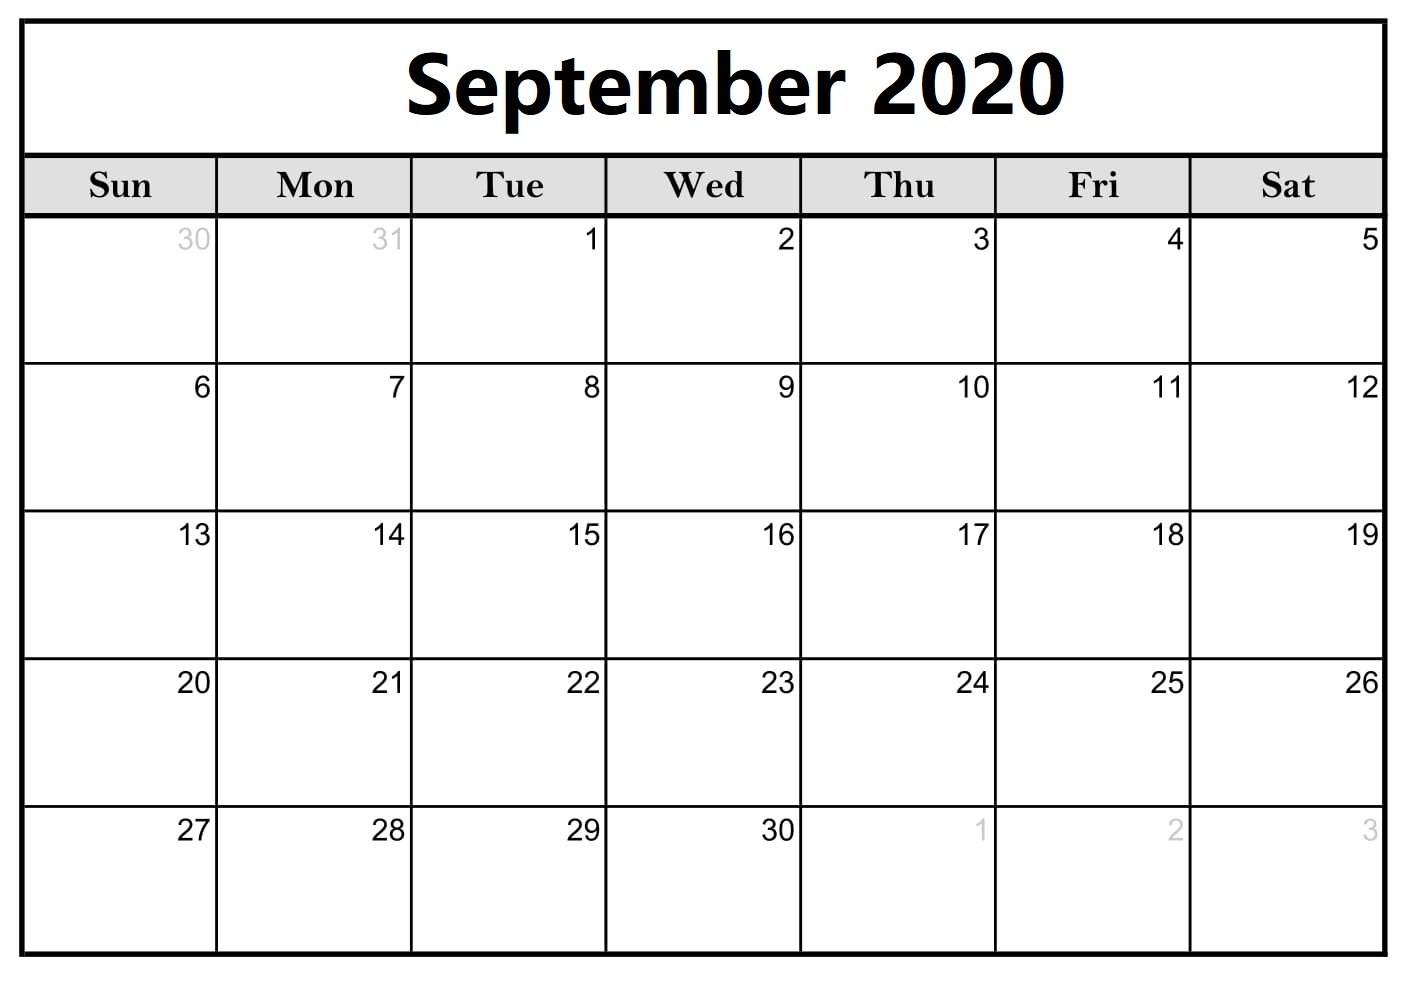 September 2020 Calendar With Holidays Planner